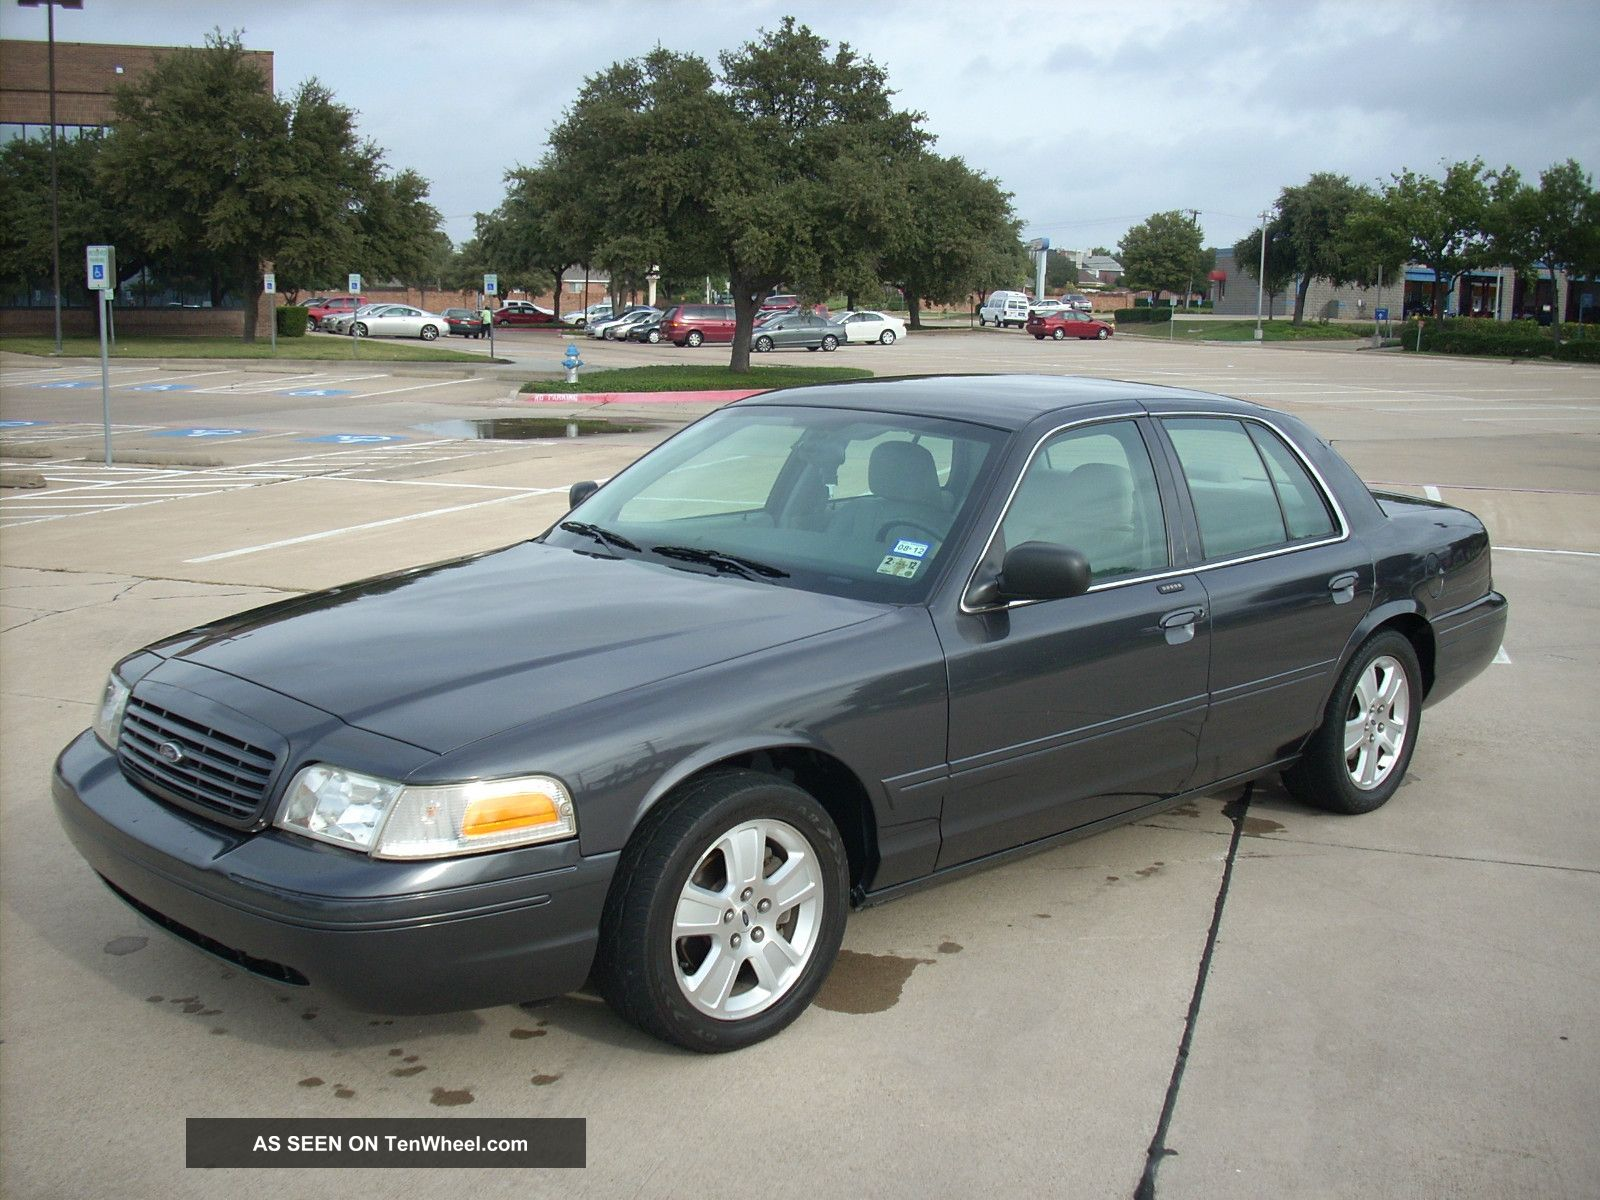 Ford Crown Victoria Lx Sport Not A Police Car - 2004 crown victoria